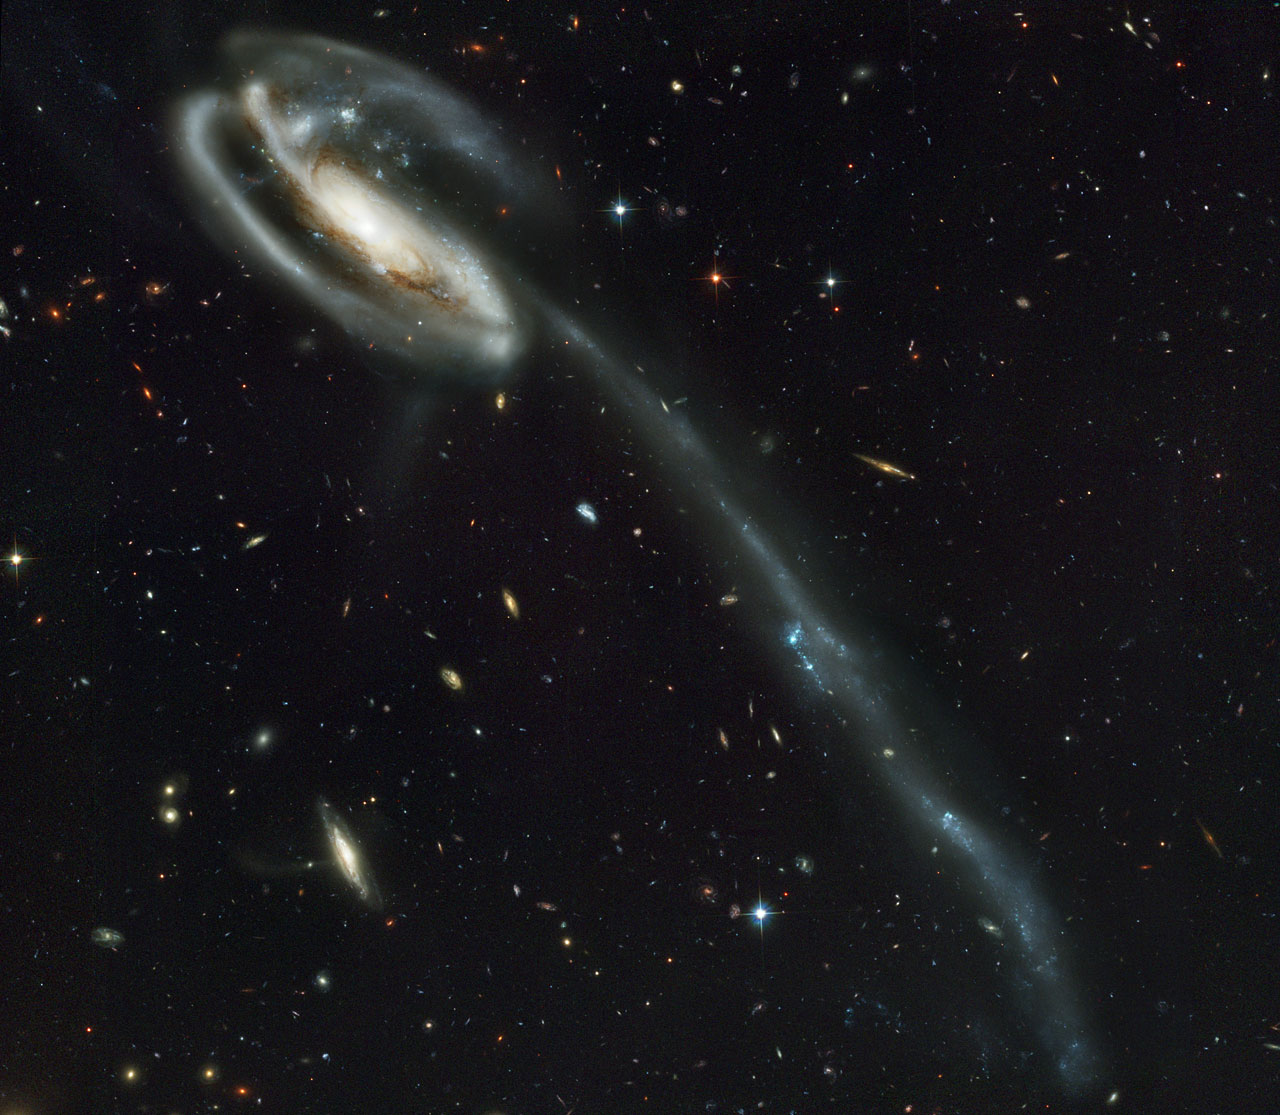 A wallpaper of distant galaxies is a stunning backdrop for a 1280x1115